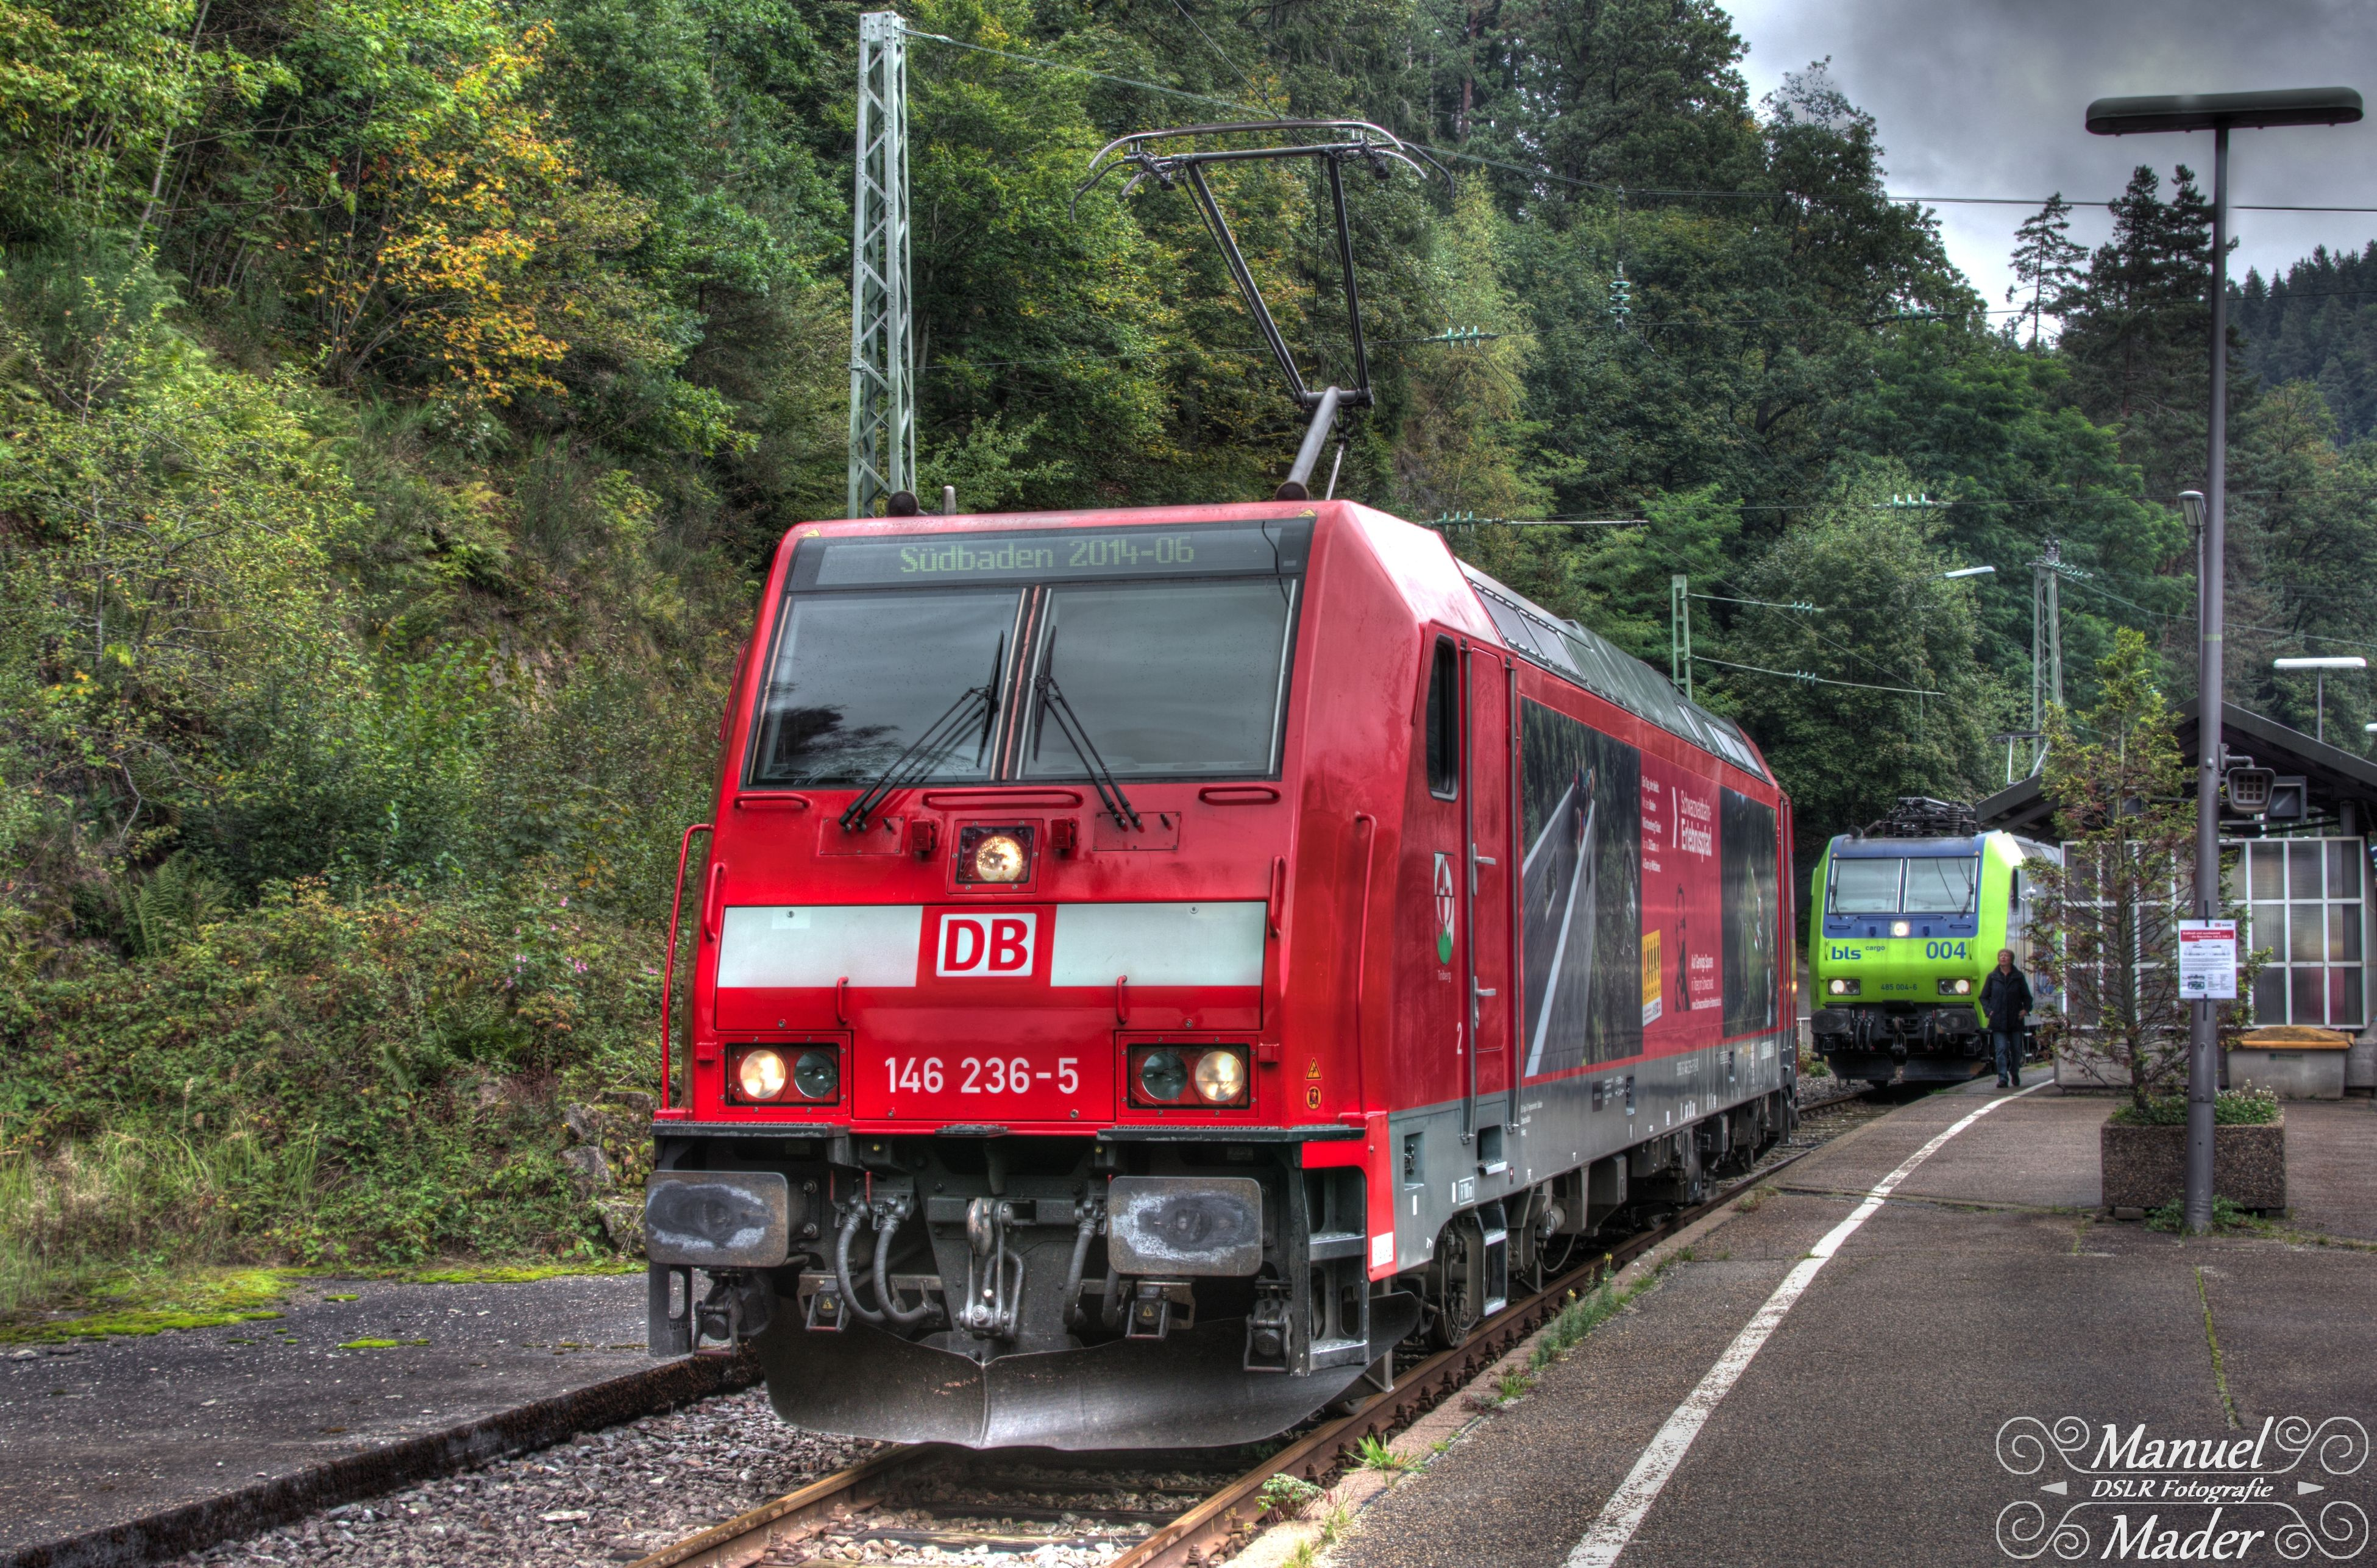 transportation, railroad track, red, tree, mode of transport, rail transportation, public transportation, land vehicle, train - vehicle, text, building exterior, communication, architecture, day, built structure, street, car, outdoors, road, no people